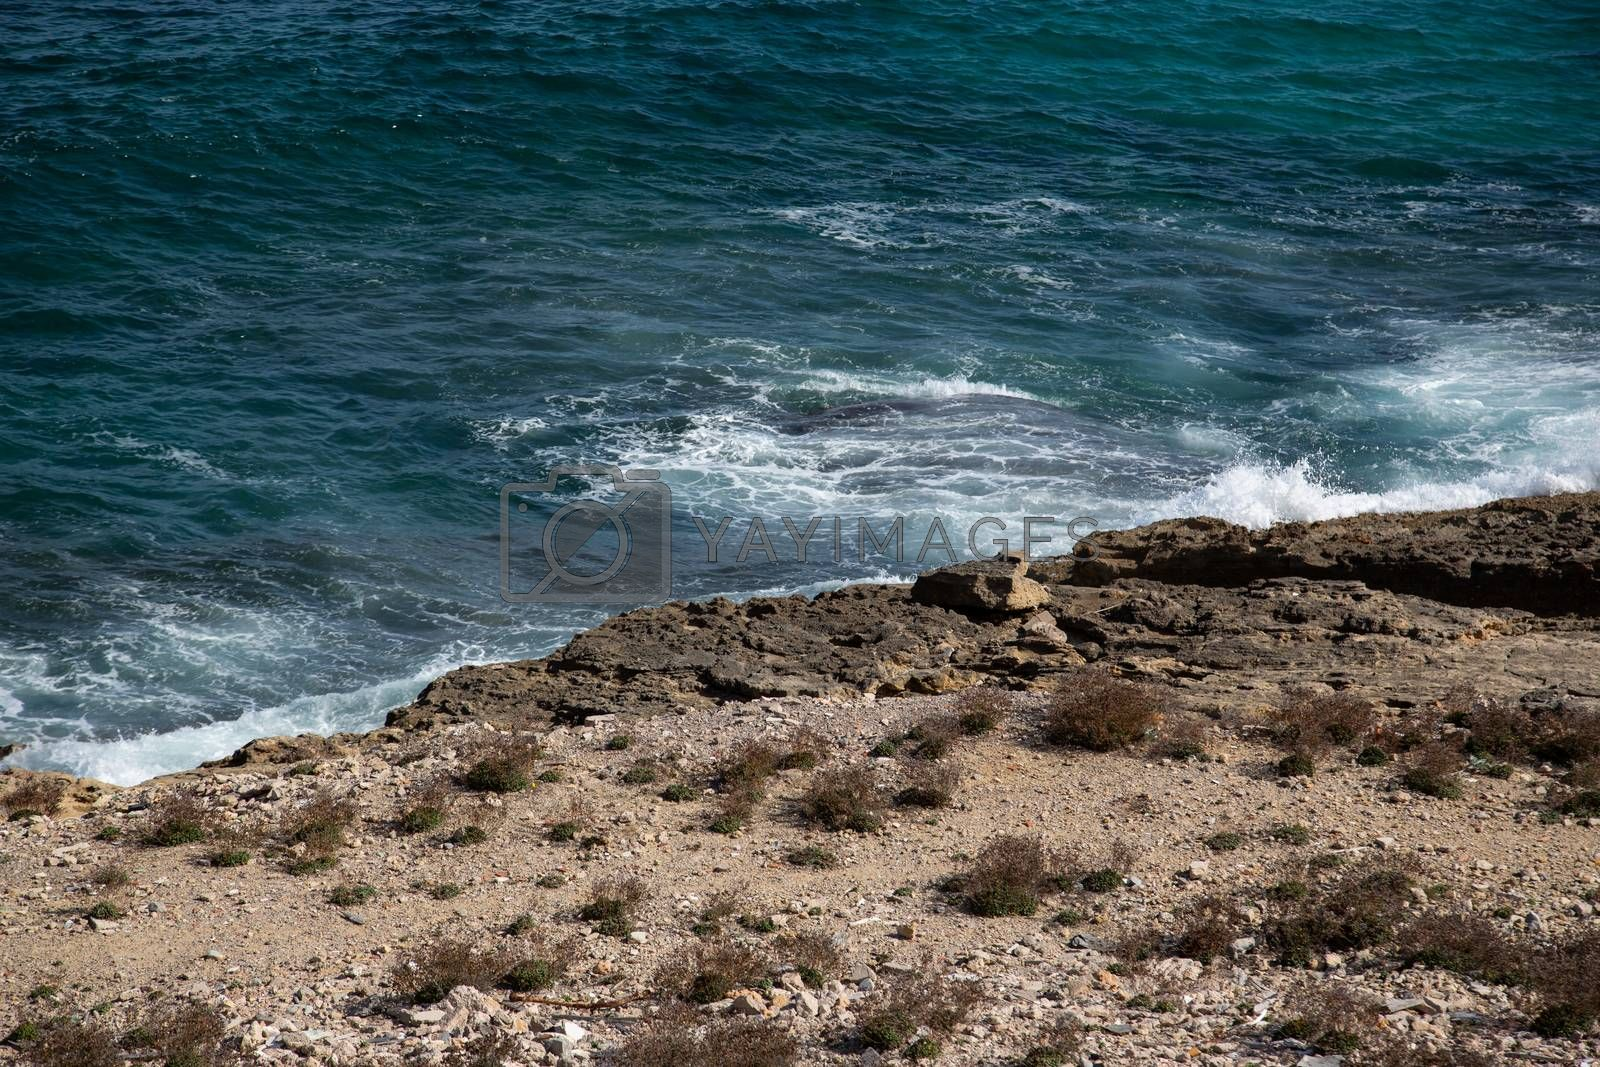 Waves at the coast, island Mallorca Spain by Sandra Fotodesign